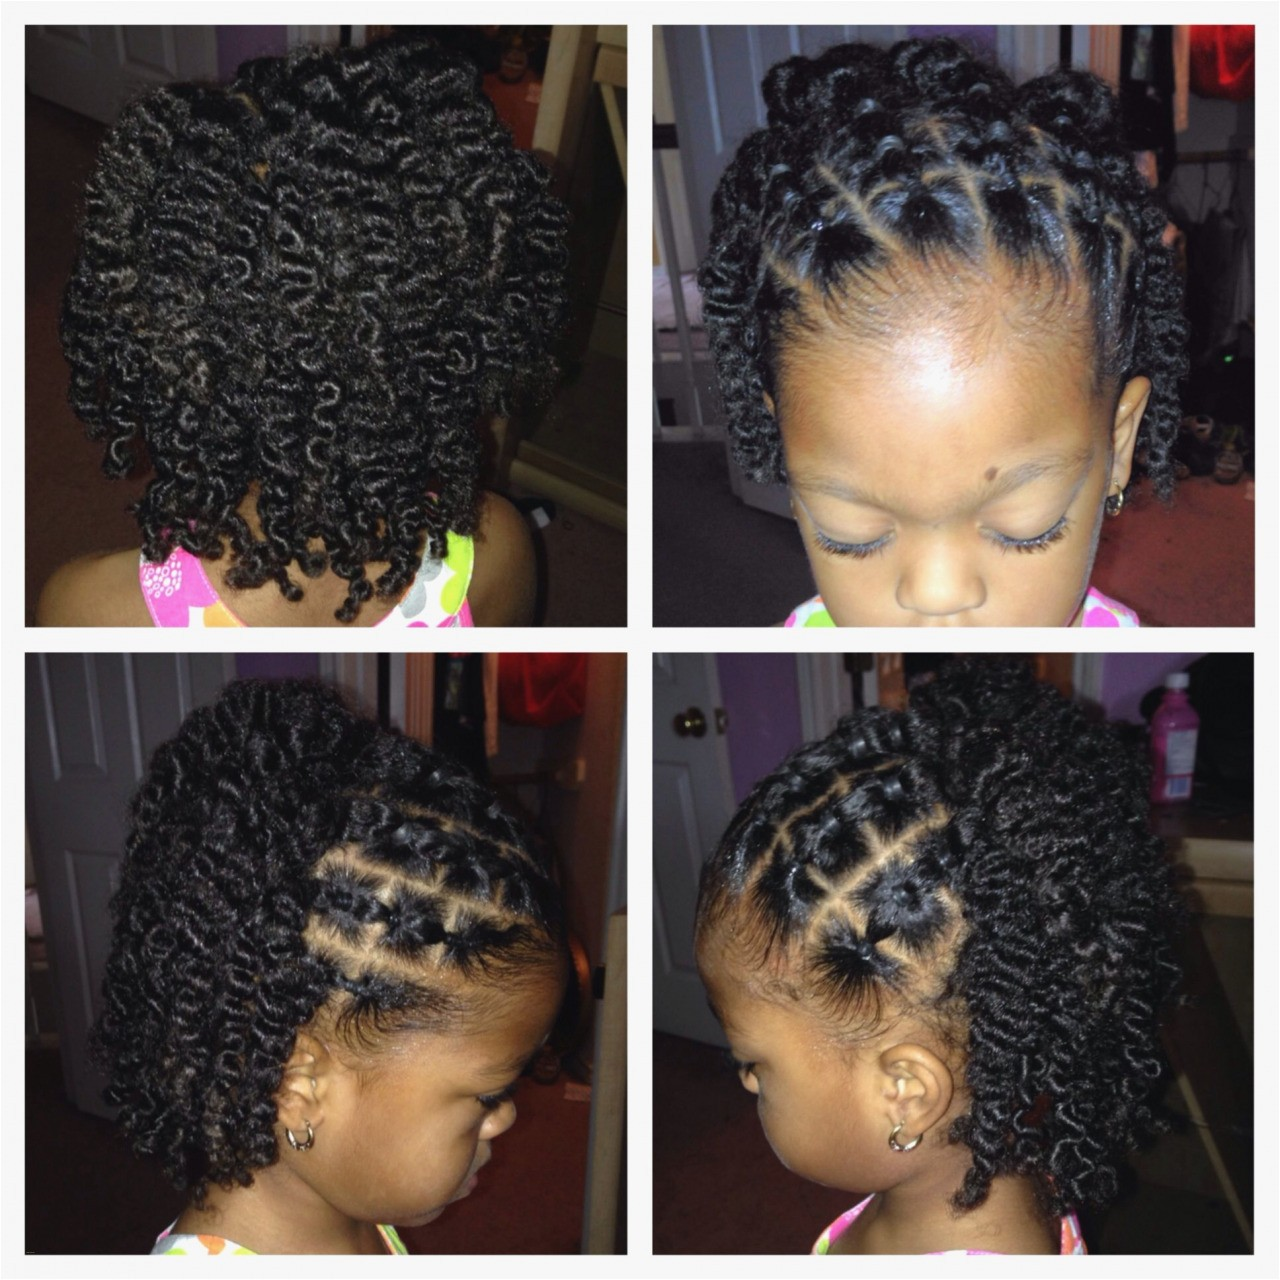 77 Hairstyles for Black Little Girls Unique Natural Hair Styles for Black Kids Fresh I Pinimg